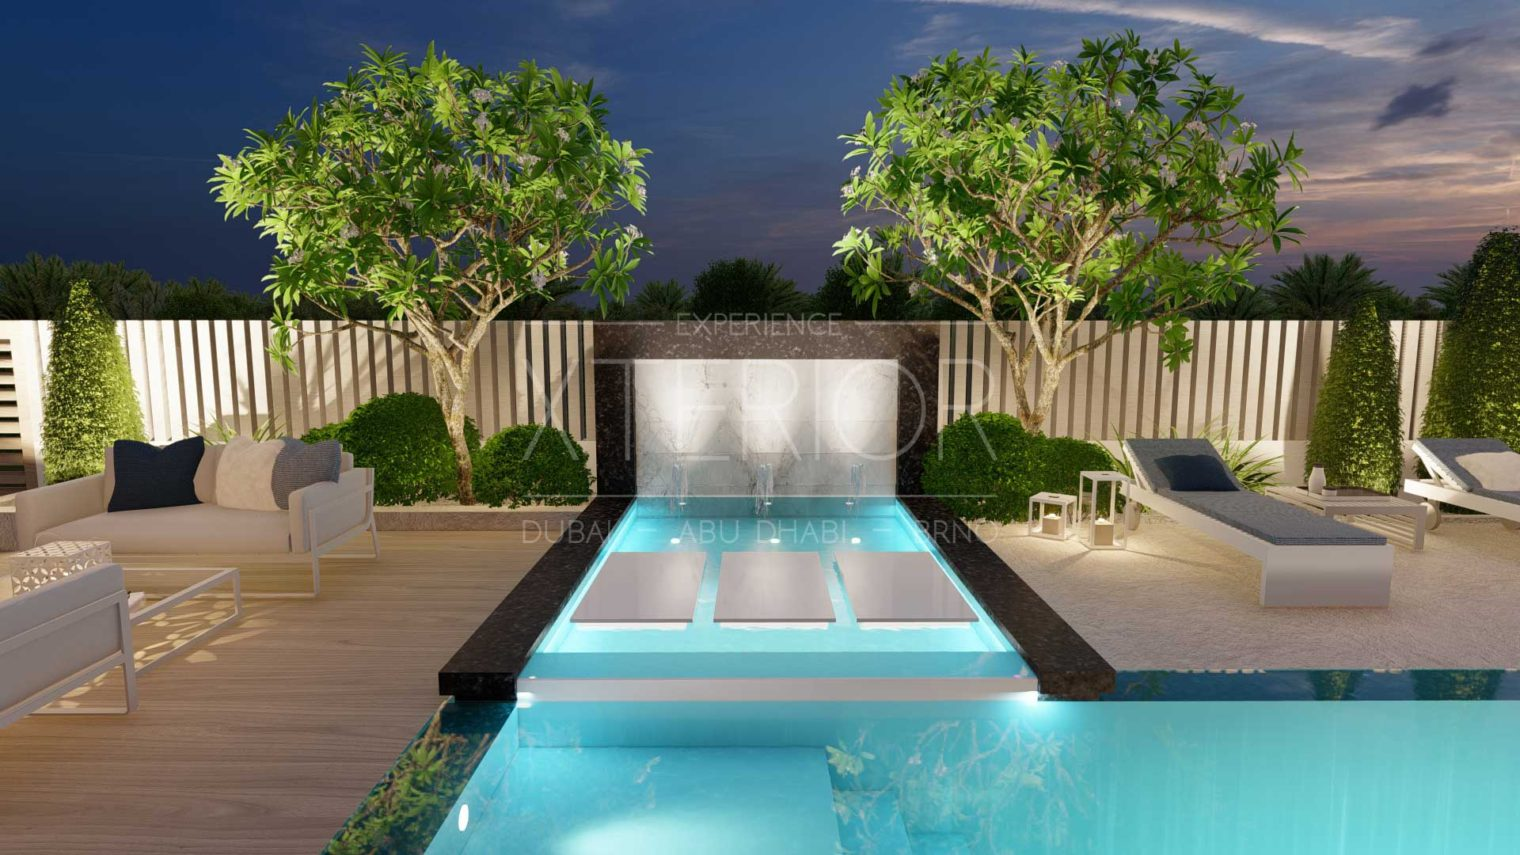 Water Feature Design and Build Company